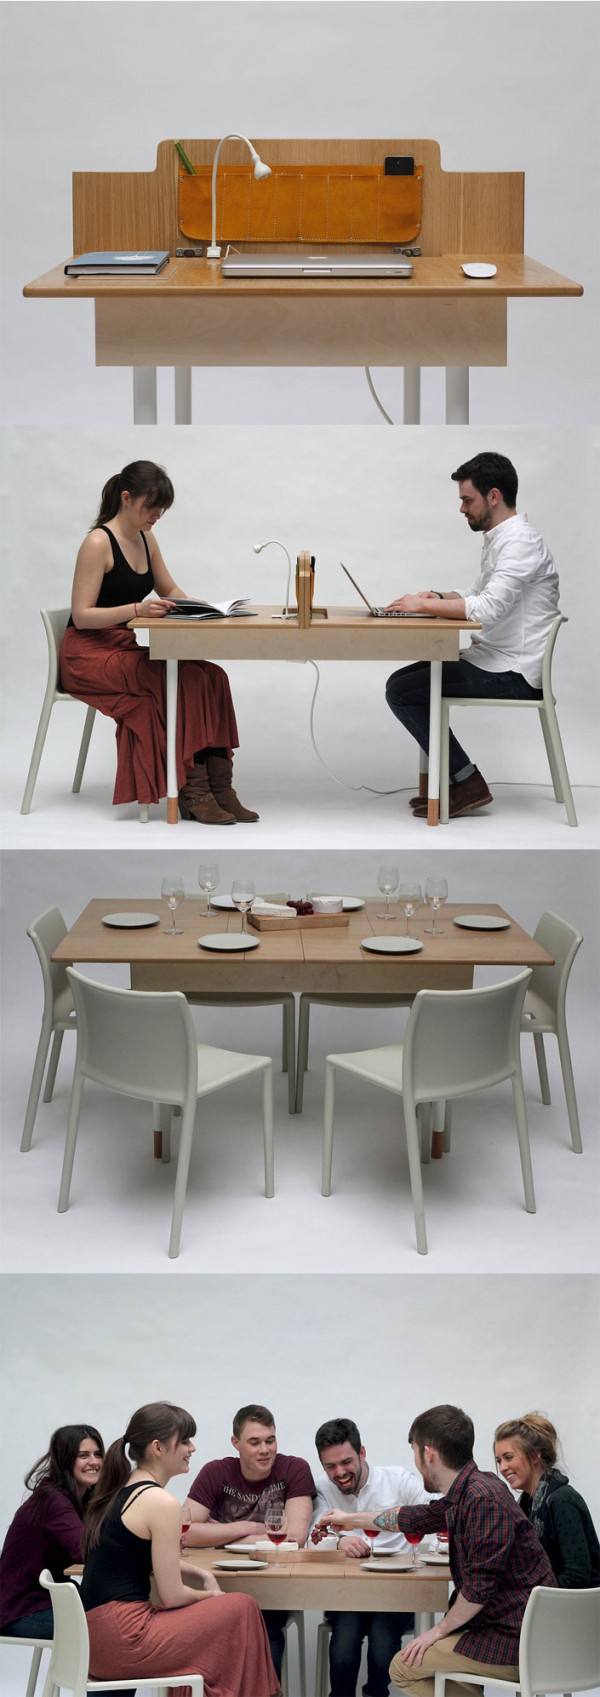 26-Desk-to-dining-table